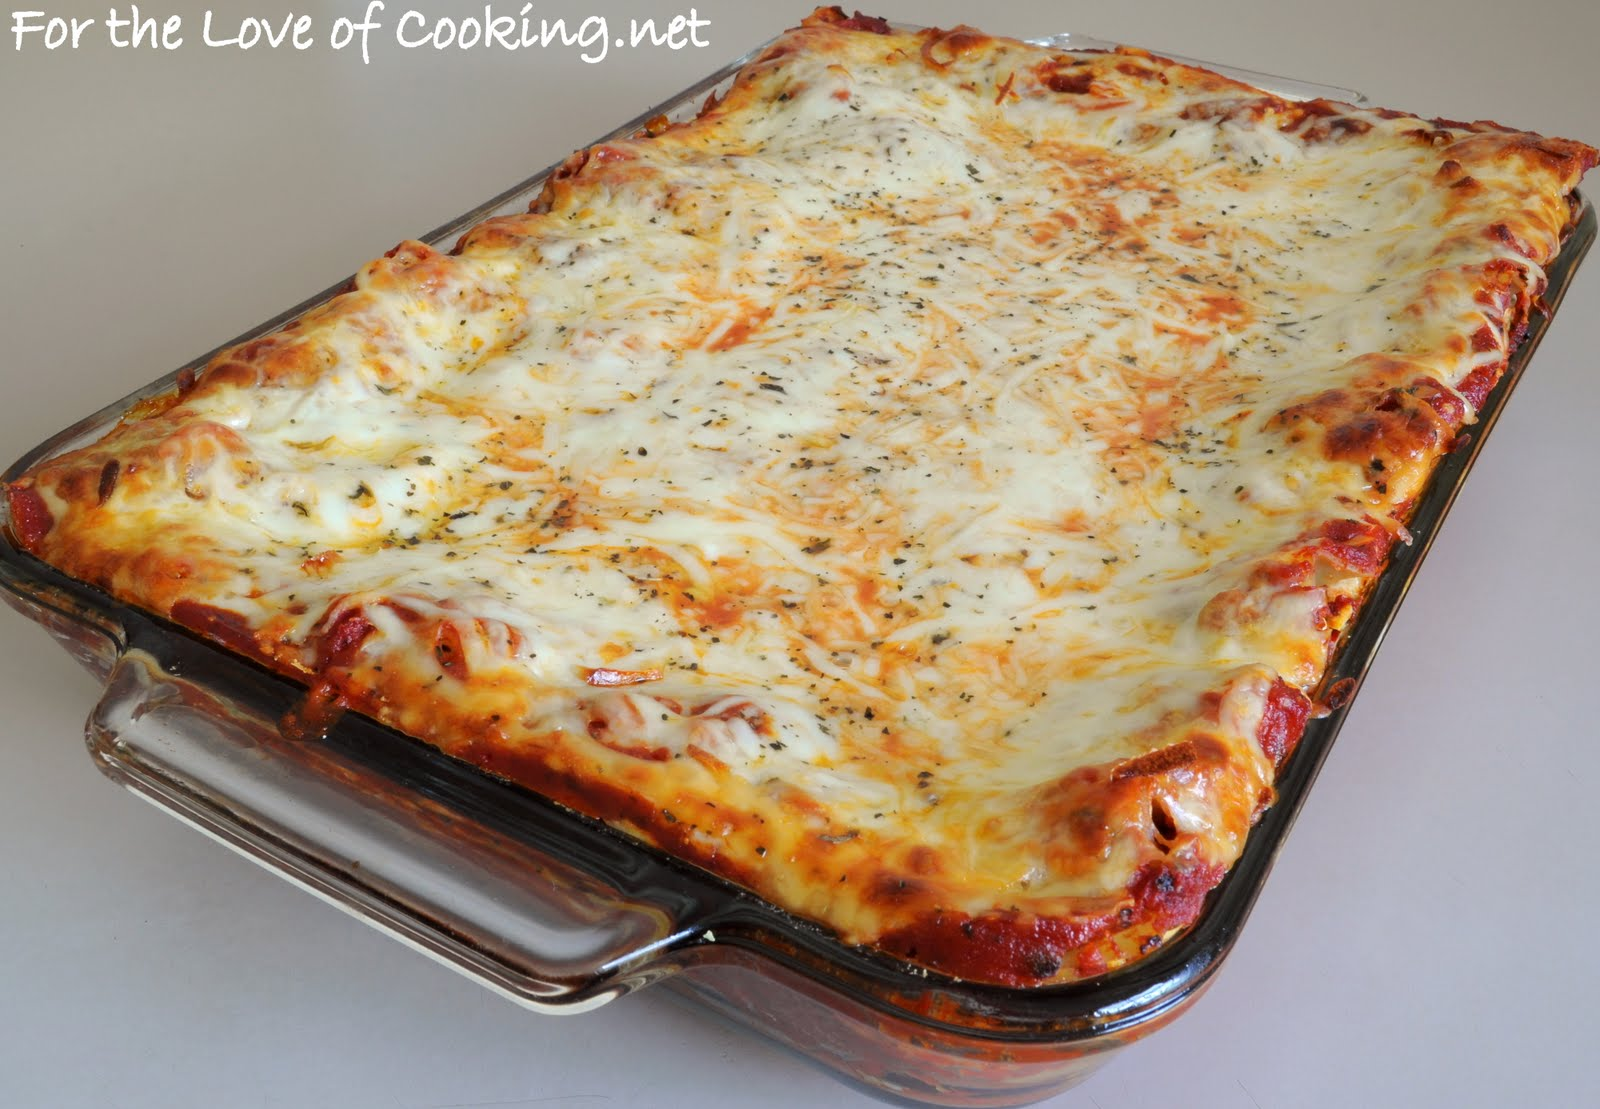 For the Love of Cooking: Italian Sausage and Spinach Lasagna